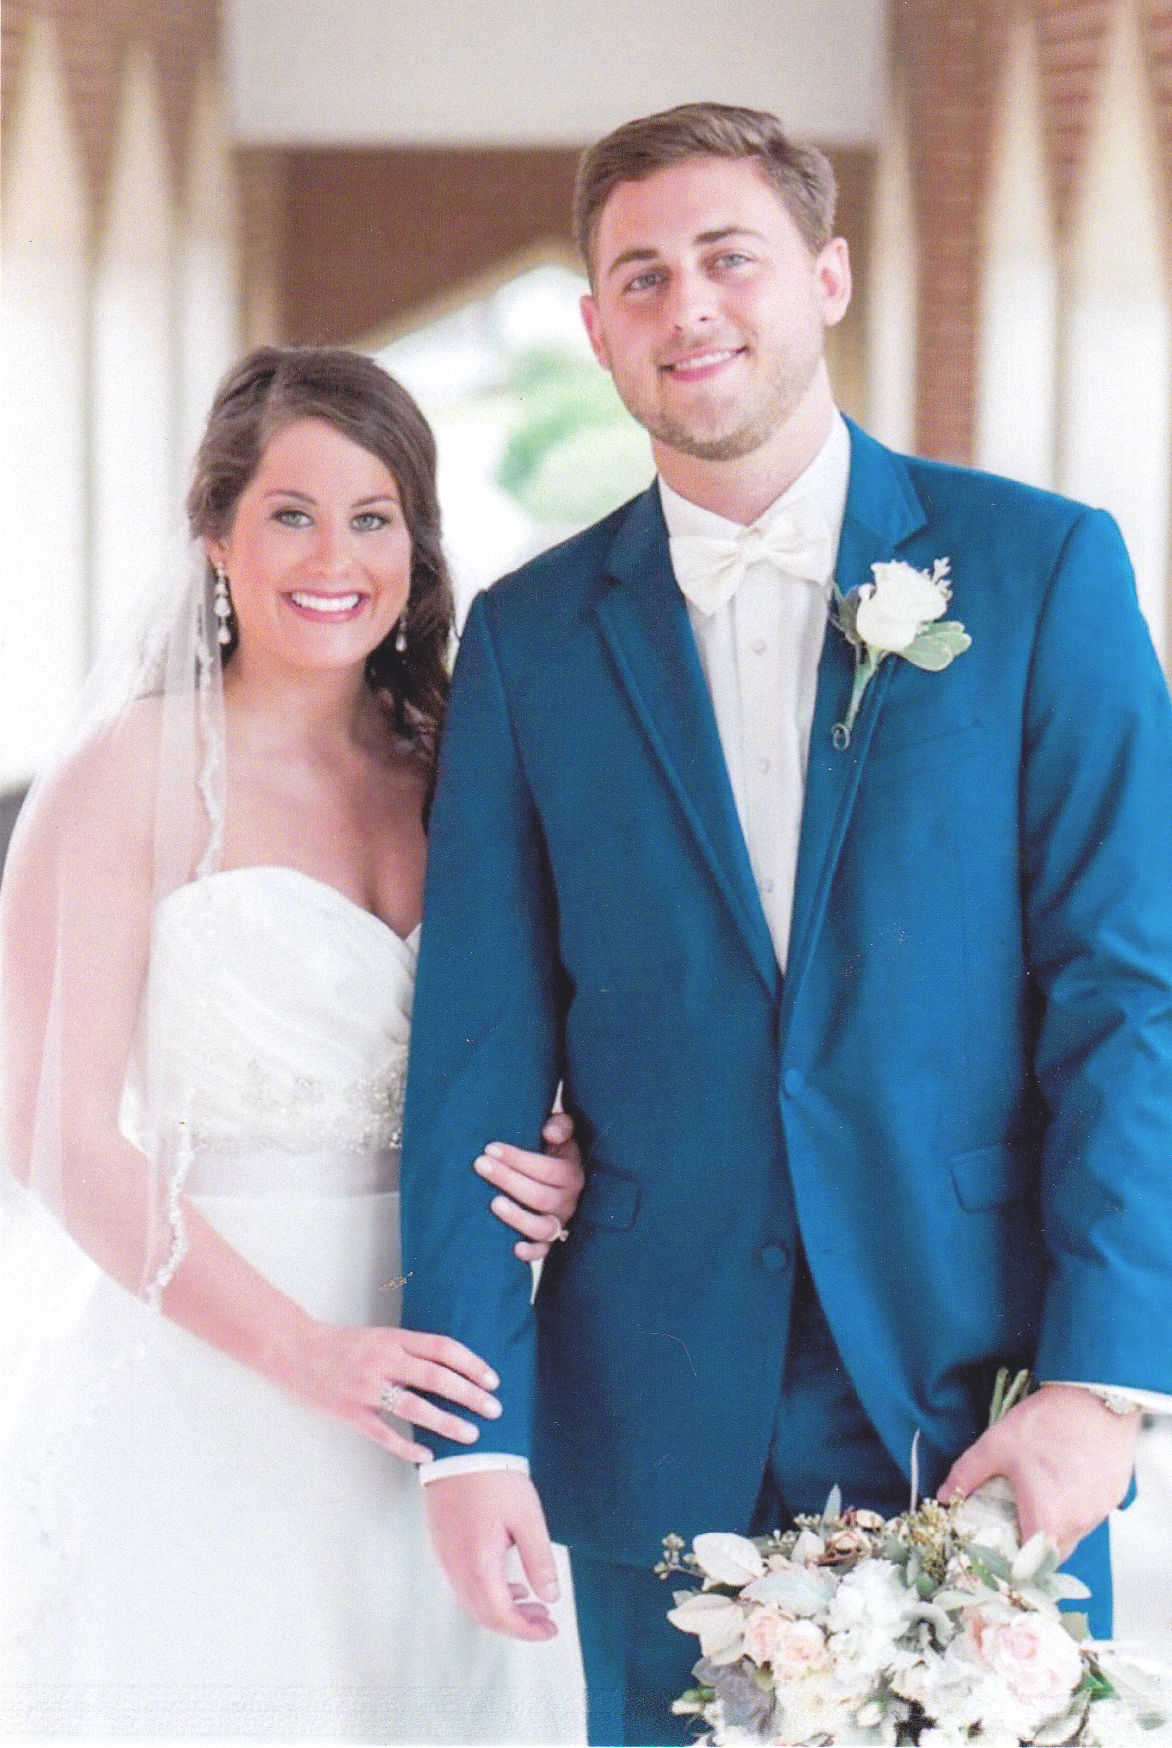 White, Gilchrist Wedding | Weddings Engagements | dothaneagle.com